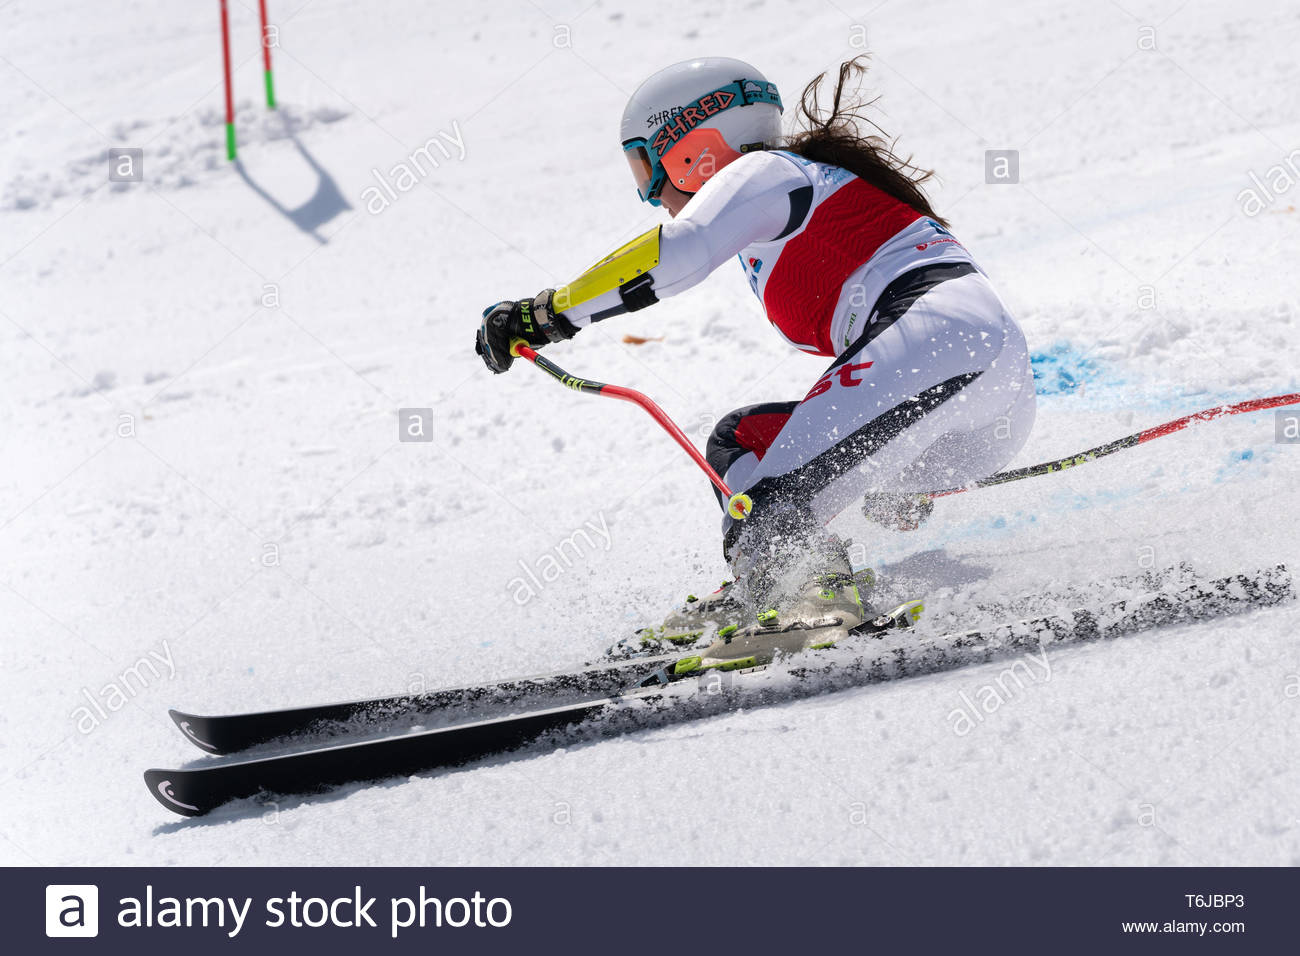 KAMCHATKA PENINSULA, RUSSIAN FEDERATION - APR 1, 2019: Mountain skier Ekaterina Popova (Kamchatka Peninsula) skiing down snowy mountain slope. Russian - Stock Image